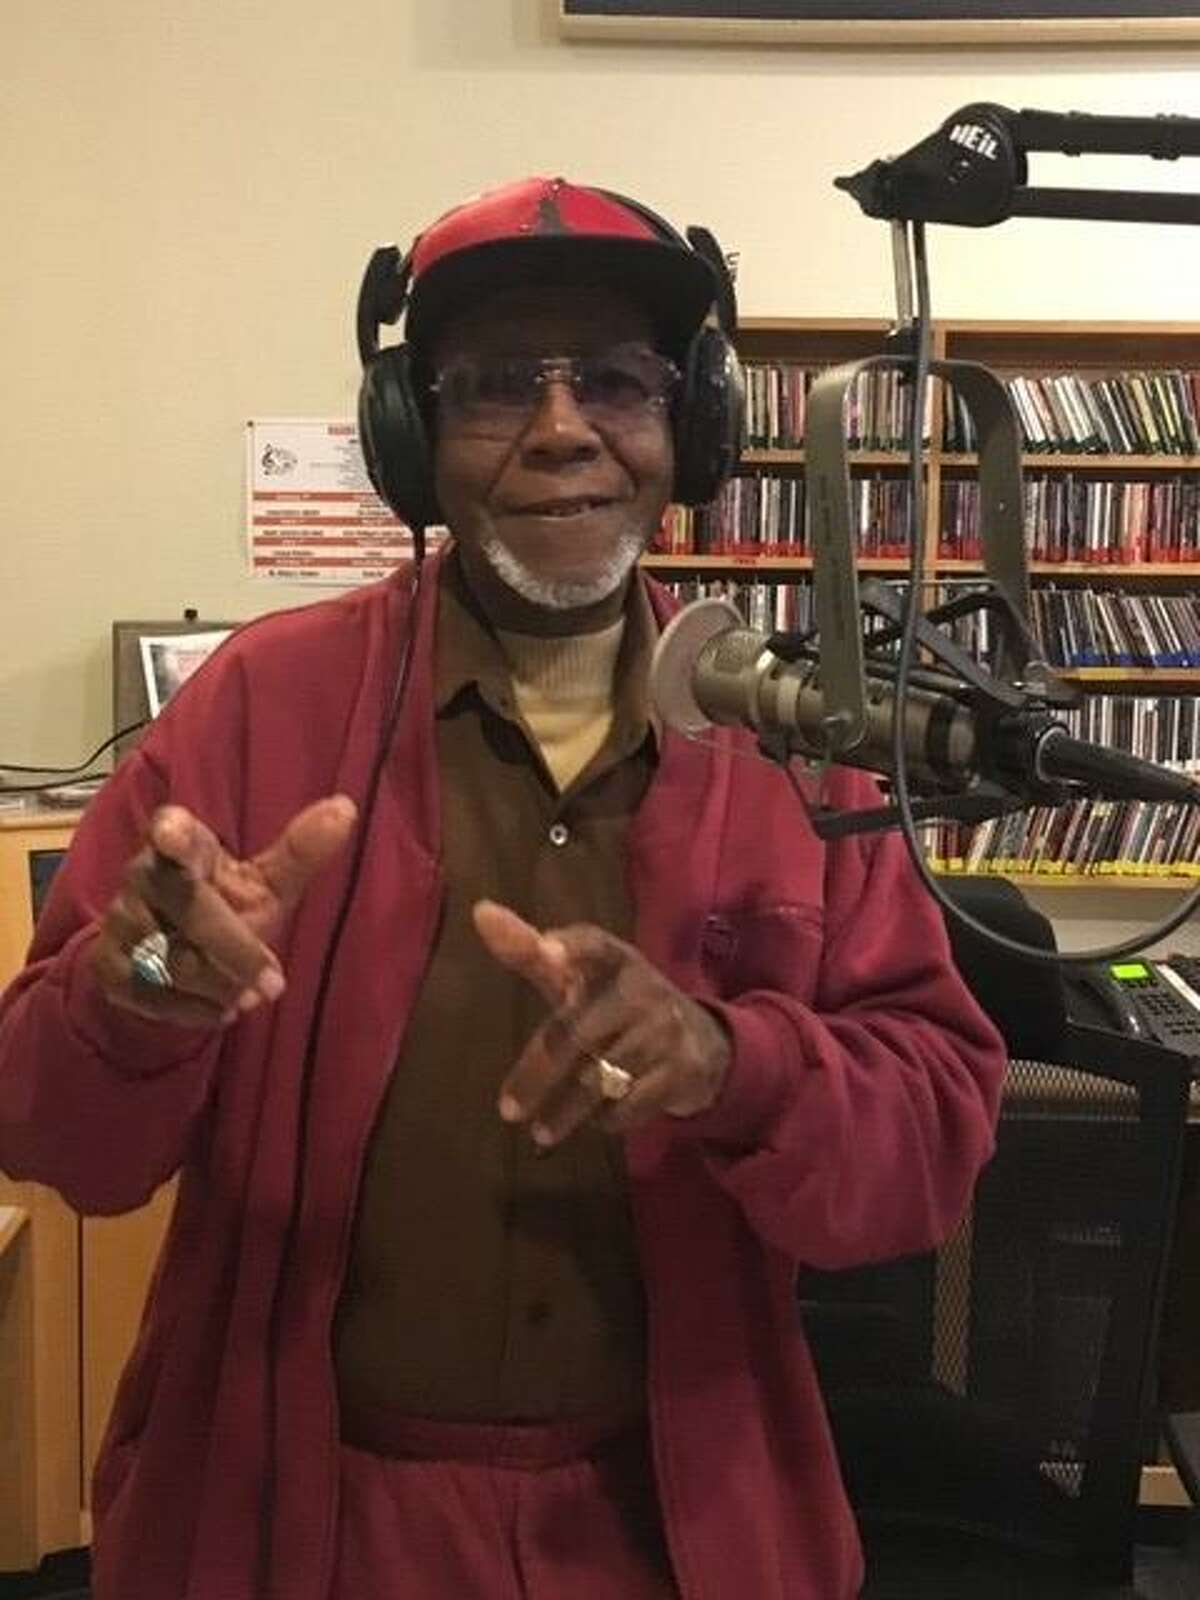 Emmit Powell at KPFA after completing chemotherapy for pancreatic cancer